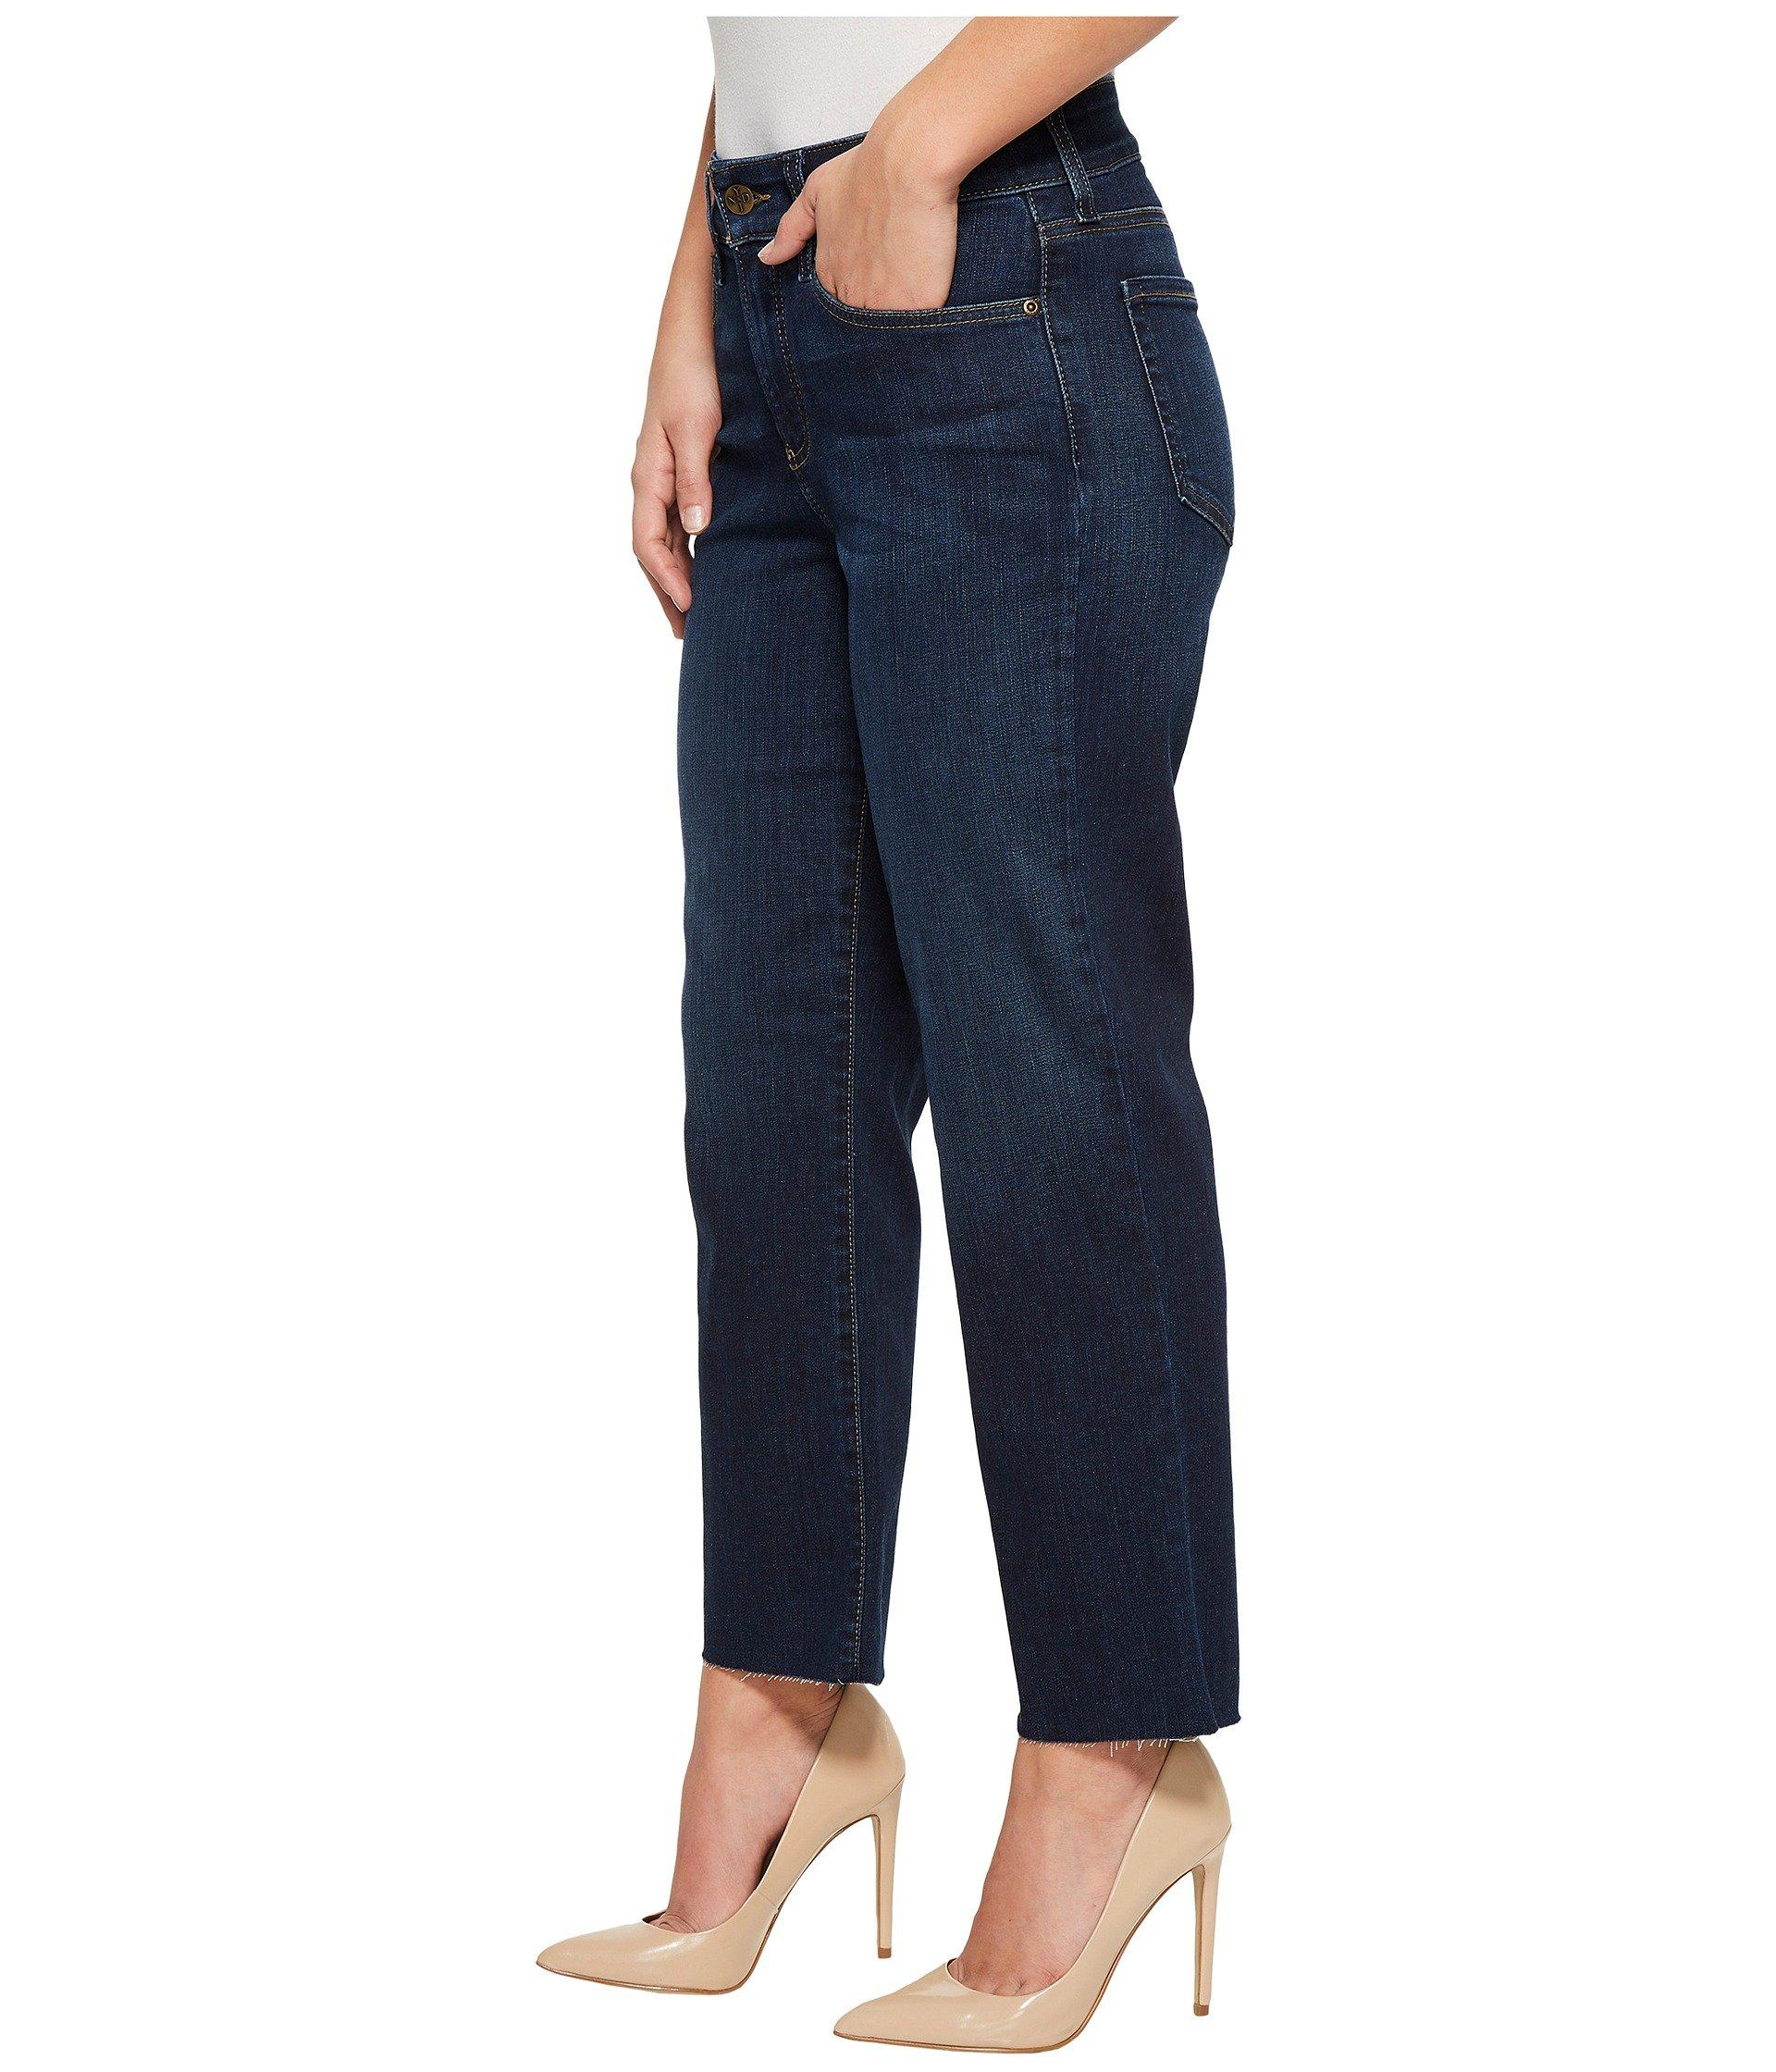 NYDJ Womens Collection Petite SZ Marilyn Straight Ankle Jeans W// Raw